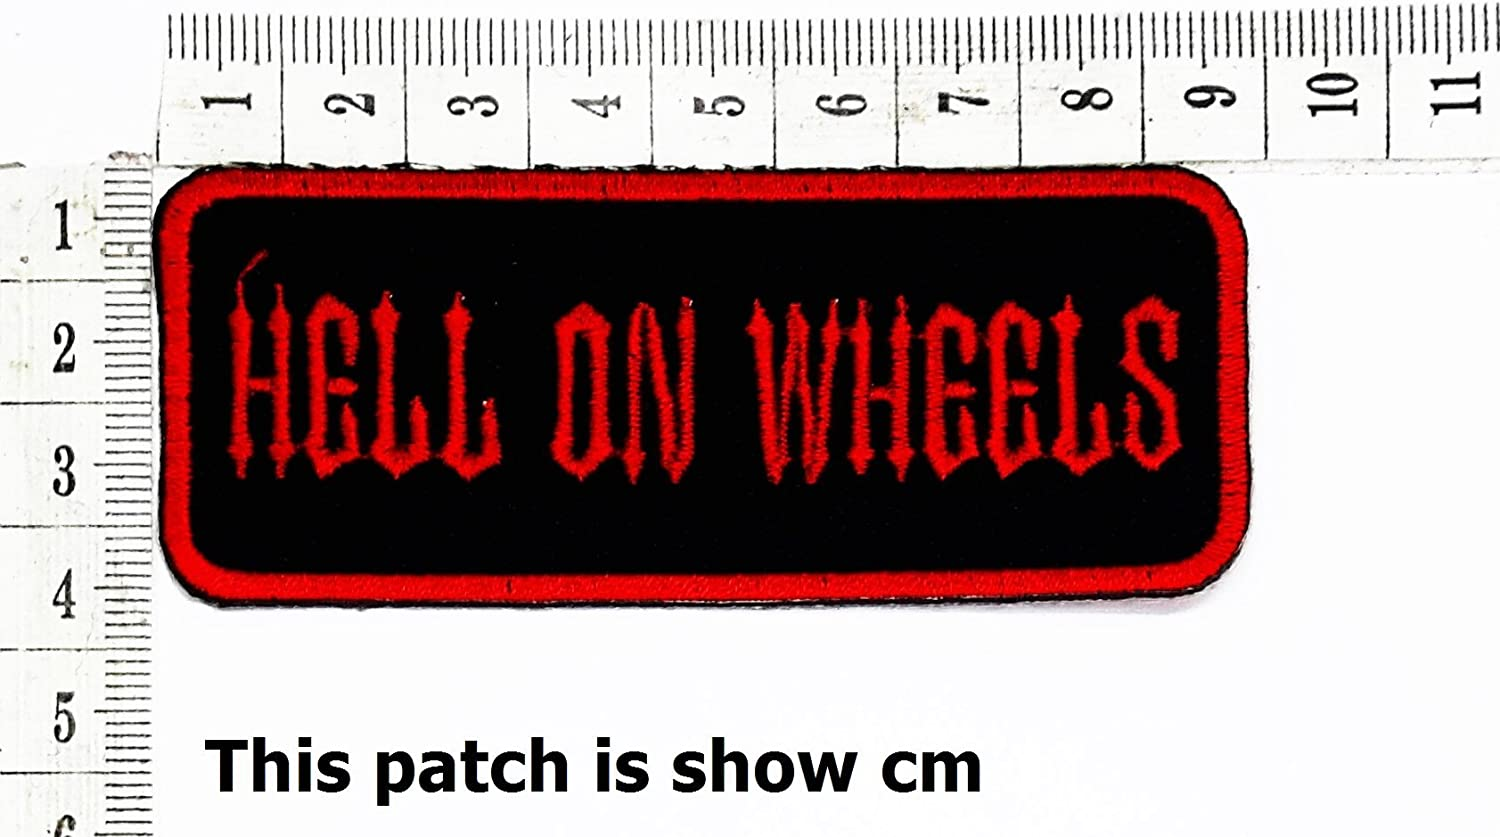 Hell on wheels Funny Words Patch Punk Rock Iron on Patch/Sew On Patch Clothes Bag T-Shirt Jeans Biker Badge Applique Devil Artwork